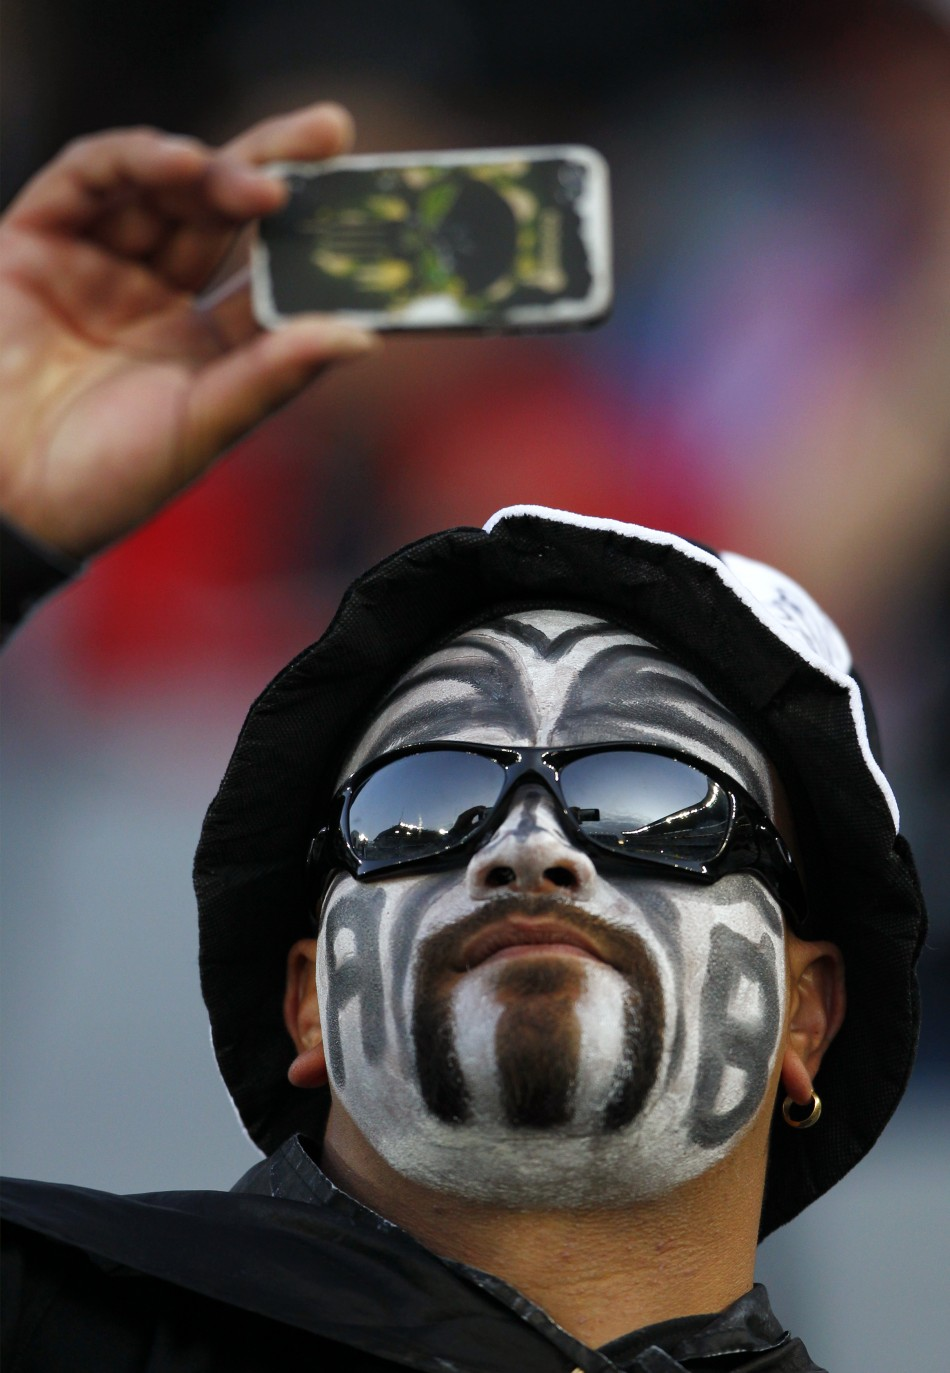 A New Zealand All Blacks039 fan takes a picture with his mobile phone before their Rugby World Cup final match against France at Eden Park in Auckland.